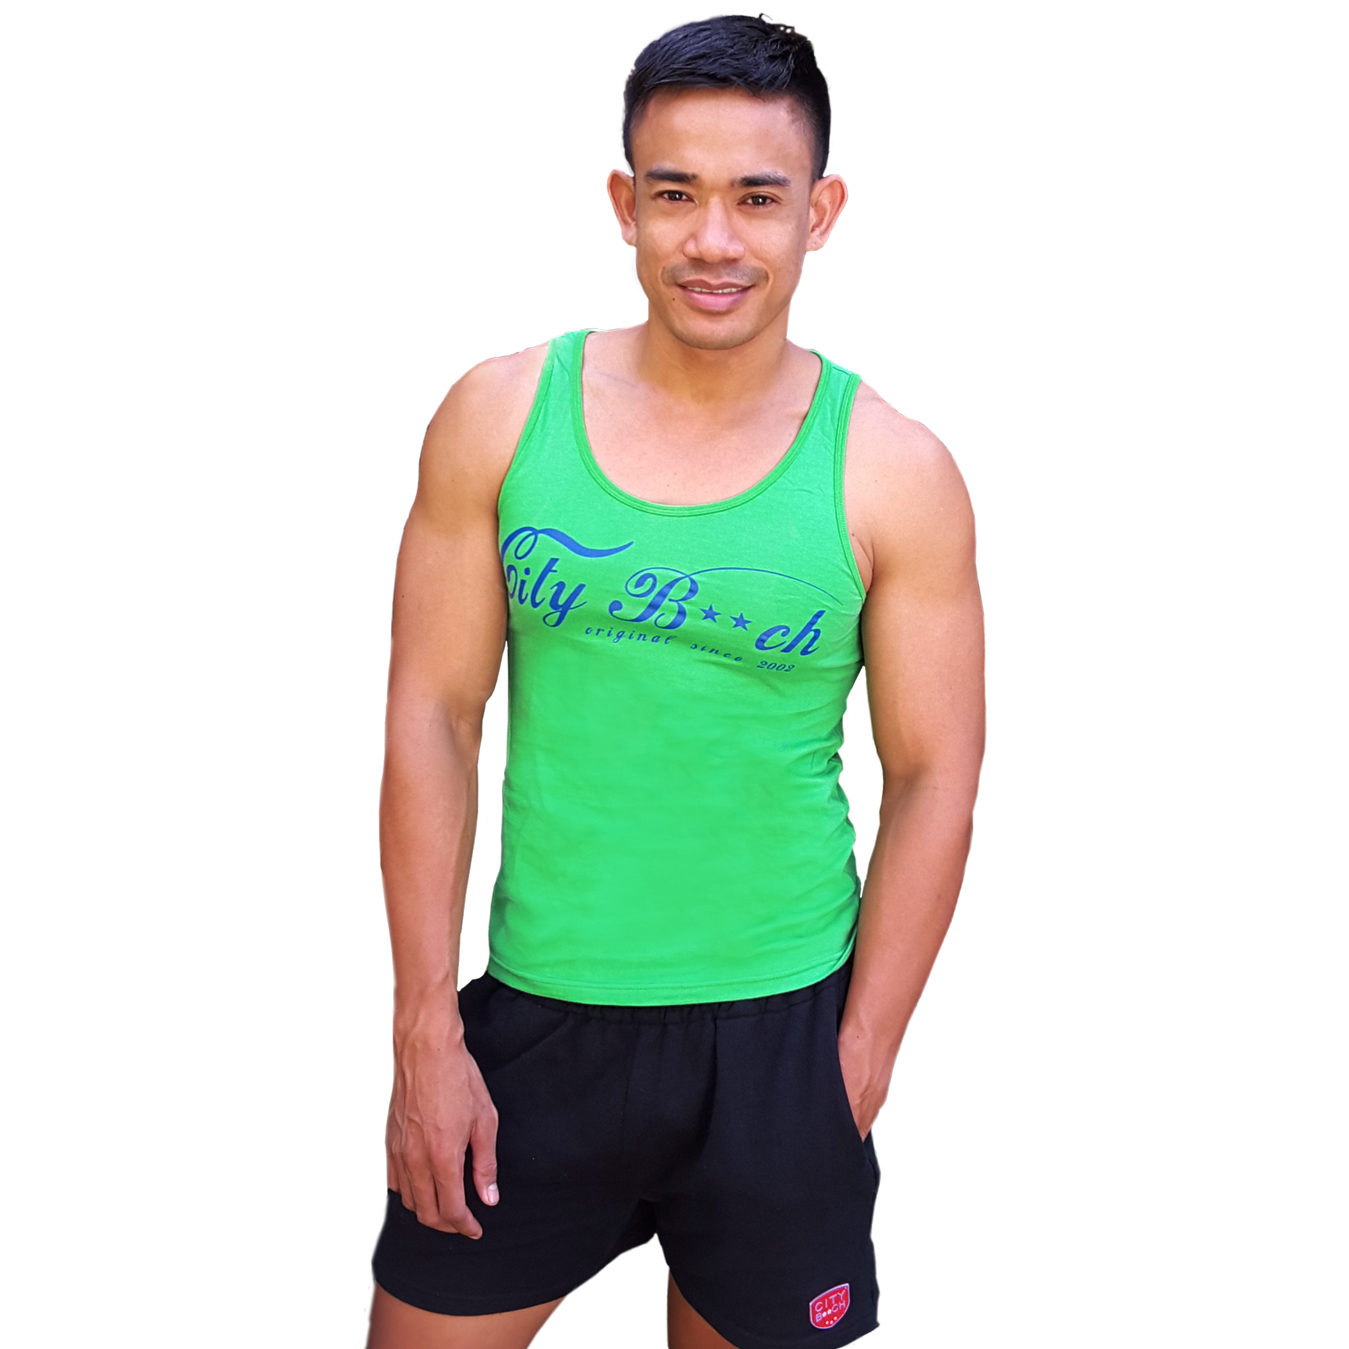 SLIM FIT SUPERBEACH GREEN